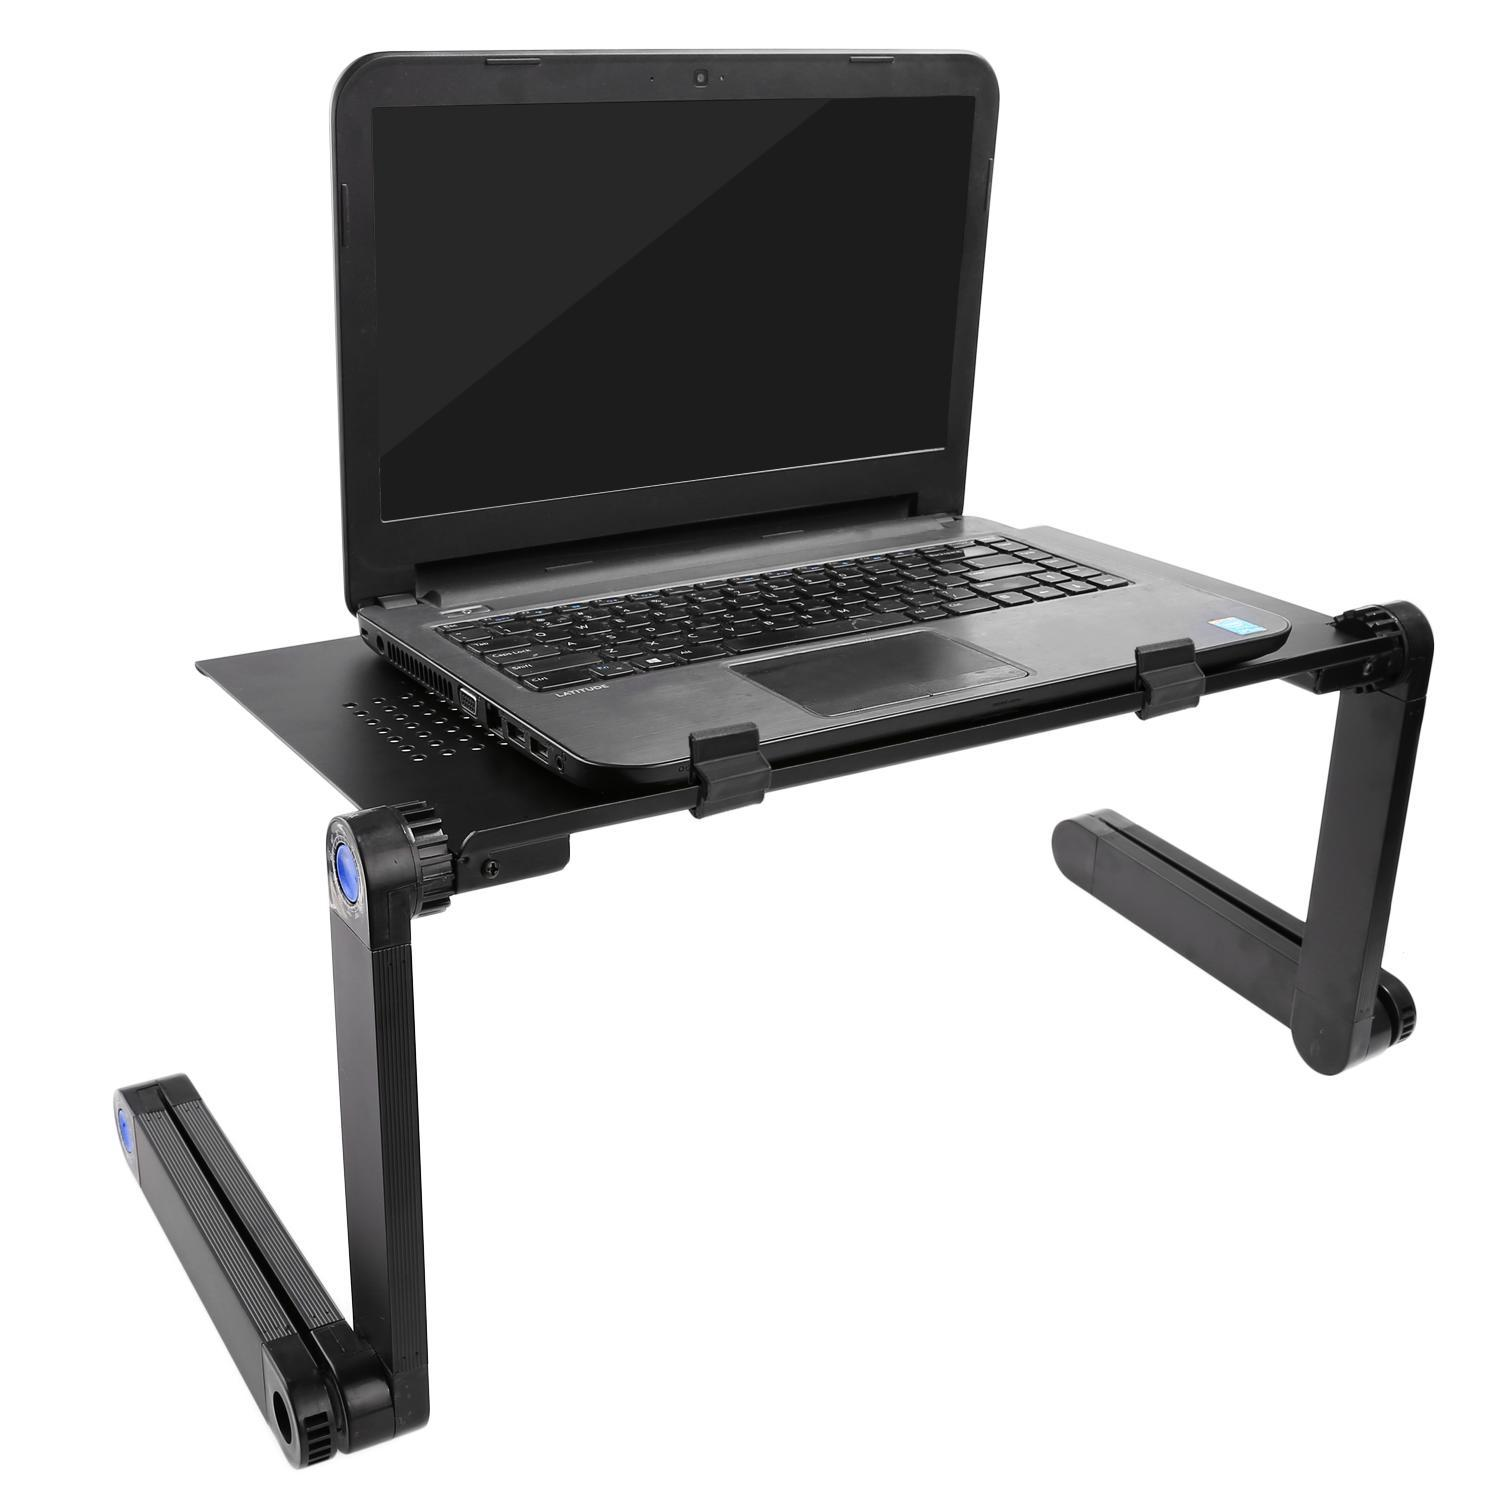 "18.7 x 10.1"" Laptop Desk Office Solutions Portable Adjustable Foldable Laptop Notebook Desk Table Stand Tray BLLK"